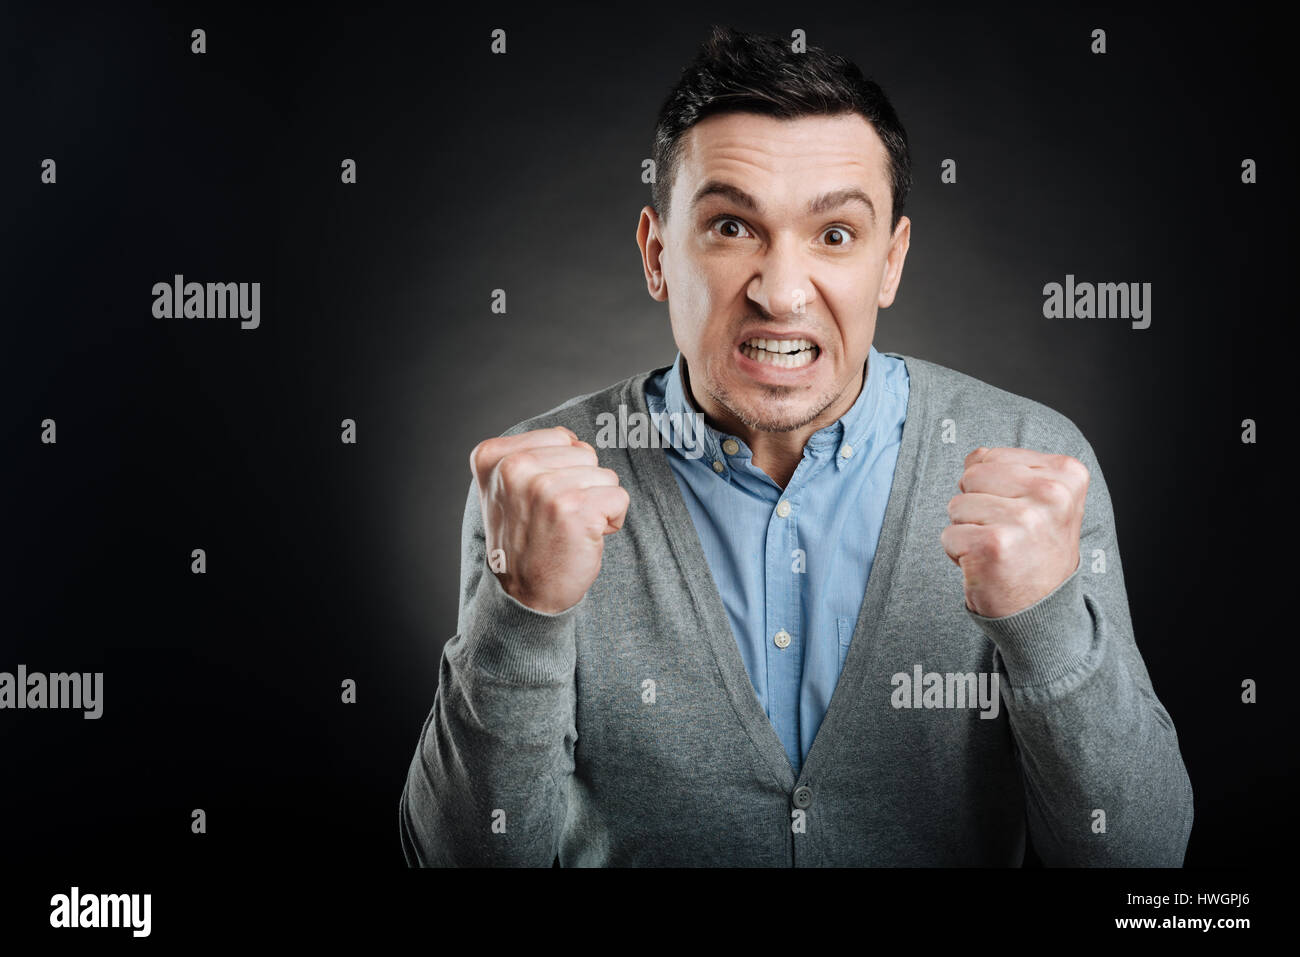 Irritated male person making fists - Stock Image